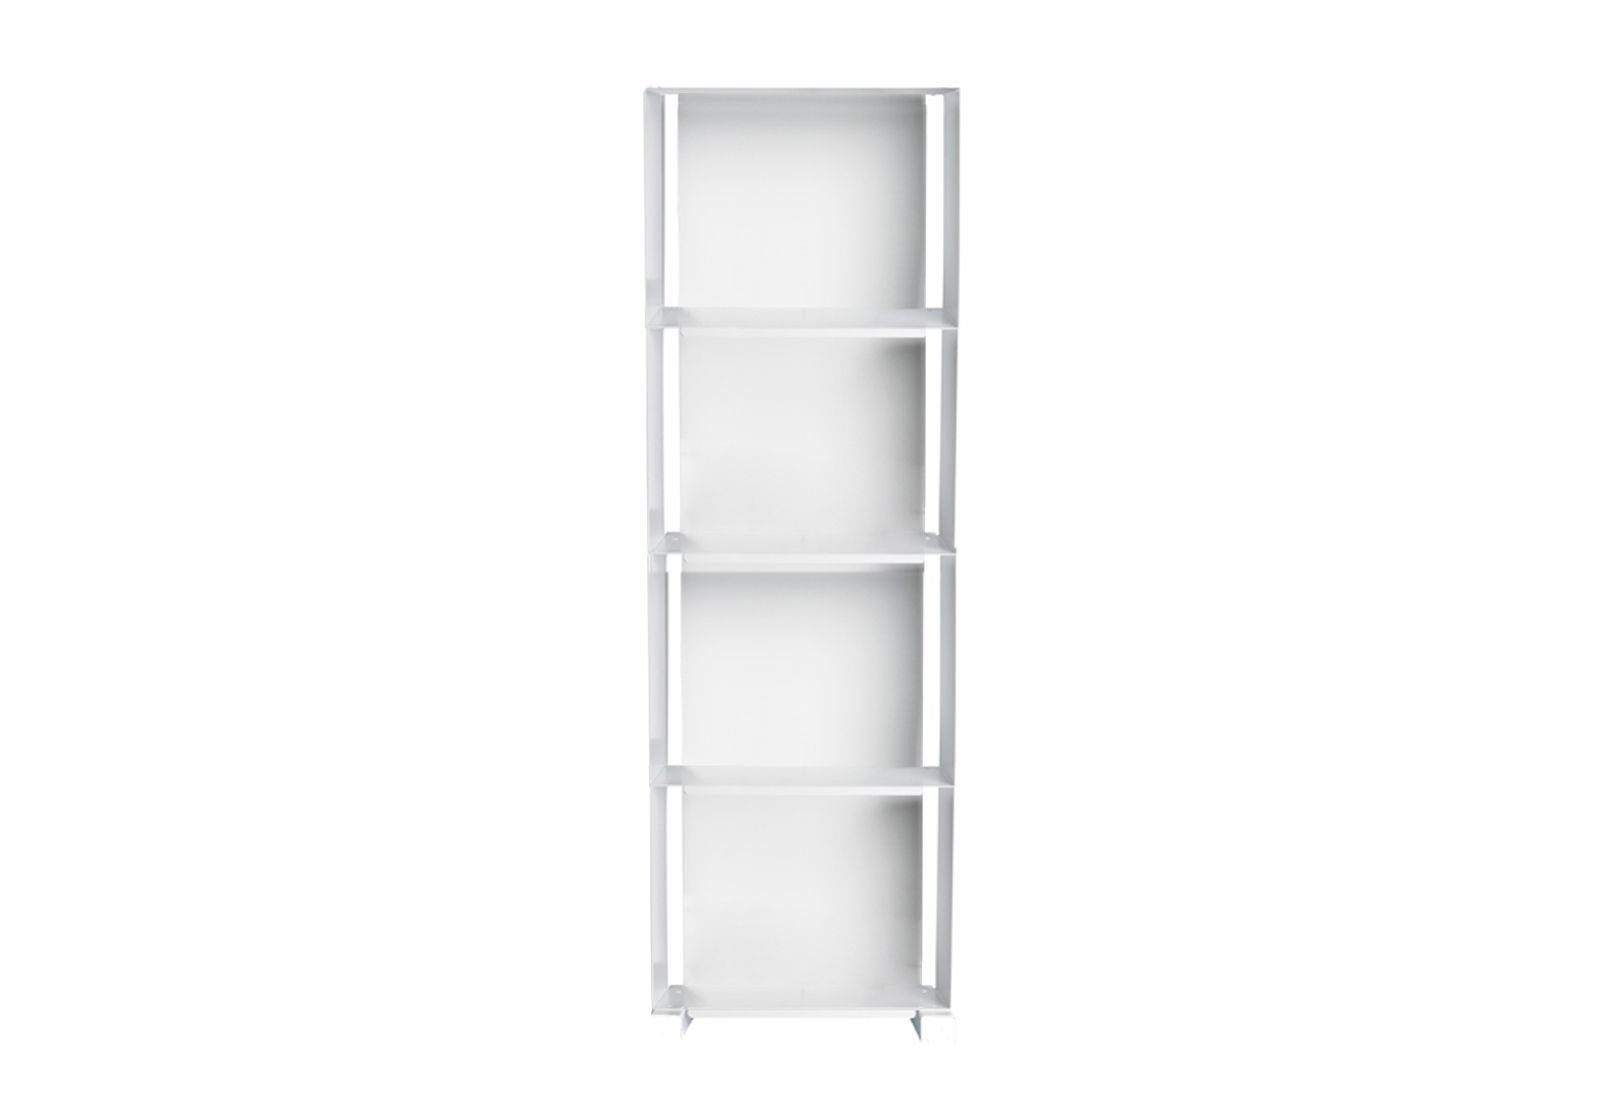 shelf design 4vb l 45 cm p 25 cm h 140 cm teebooks